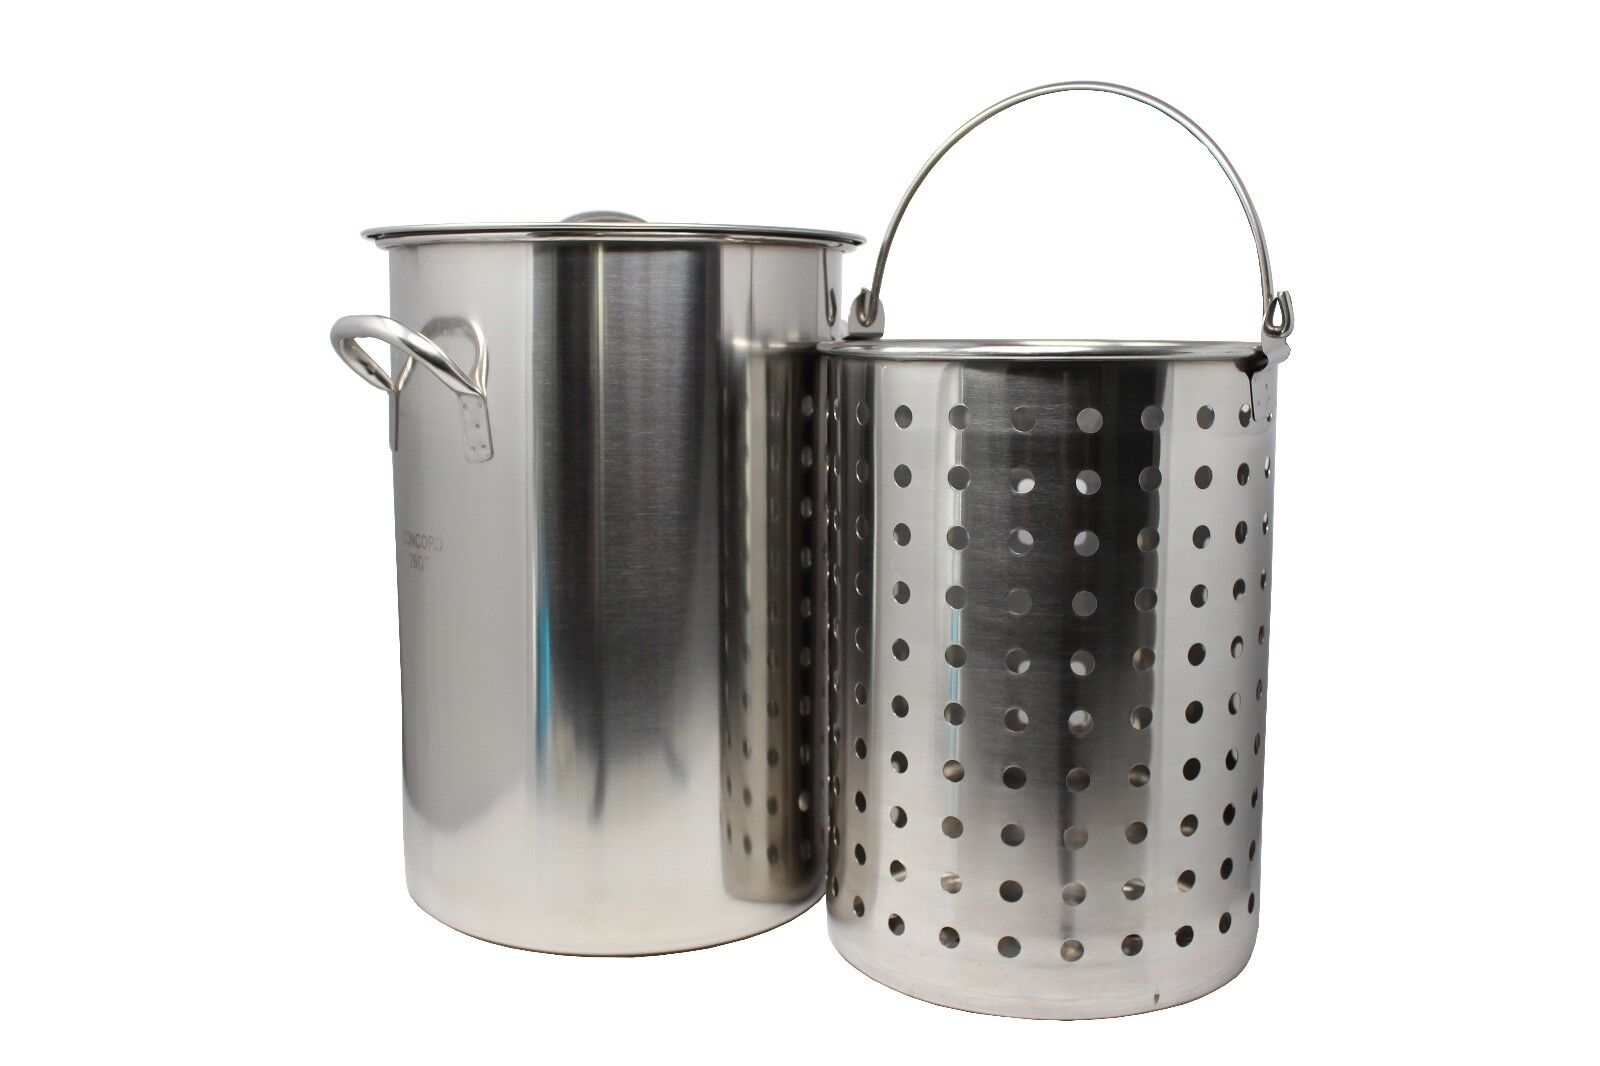 CONCORD Stainless Steel Stock Pot w/ Basket. Heavy Kettle. C